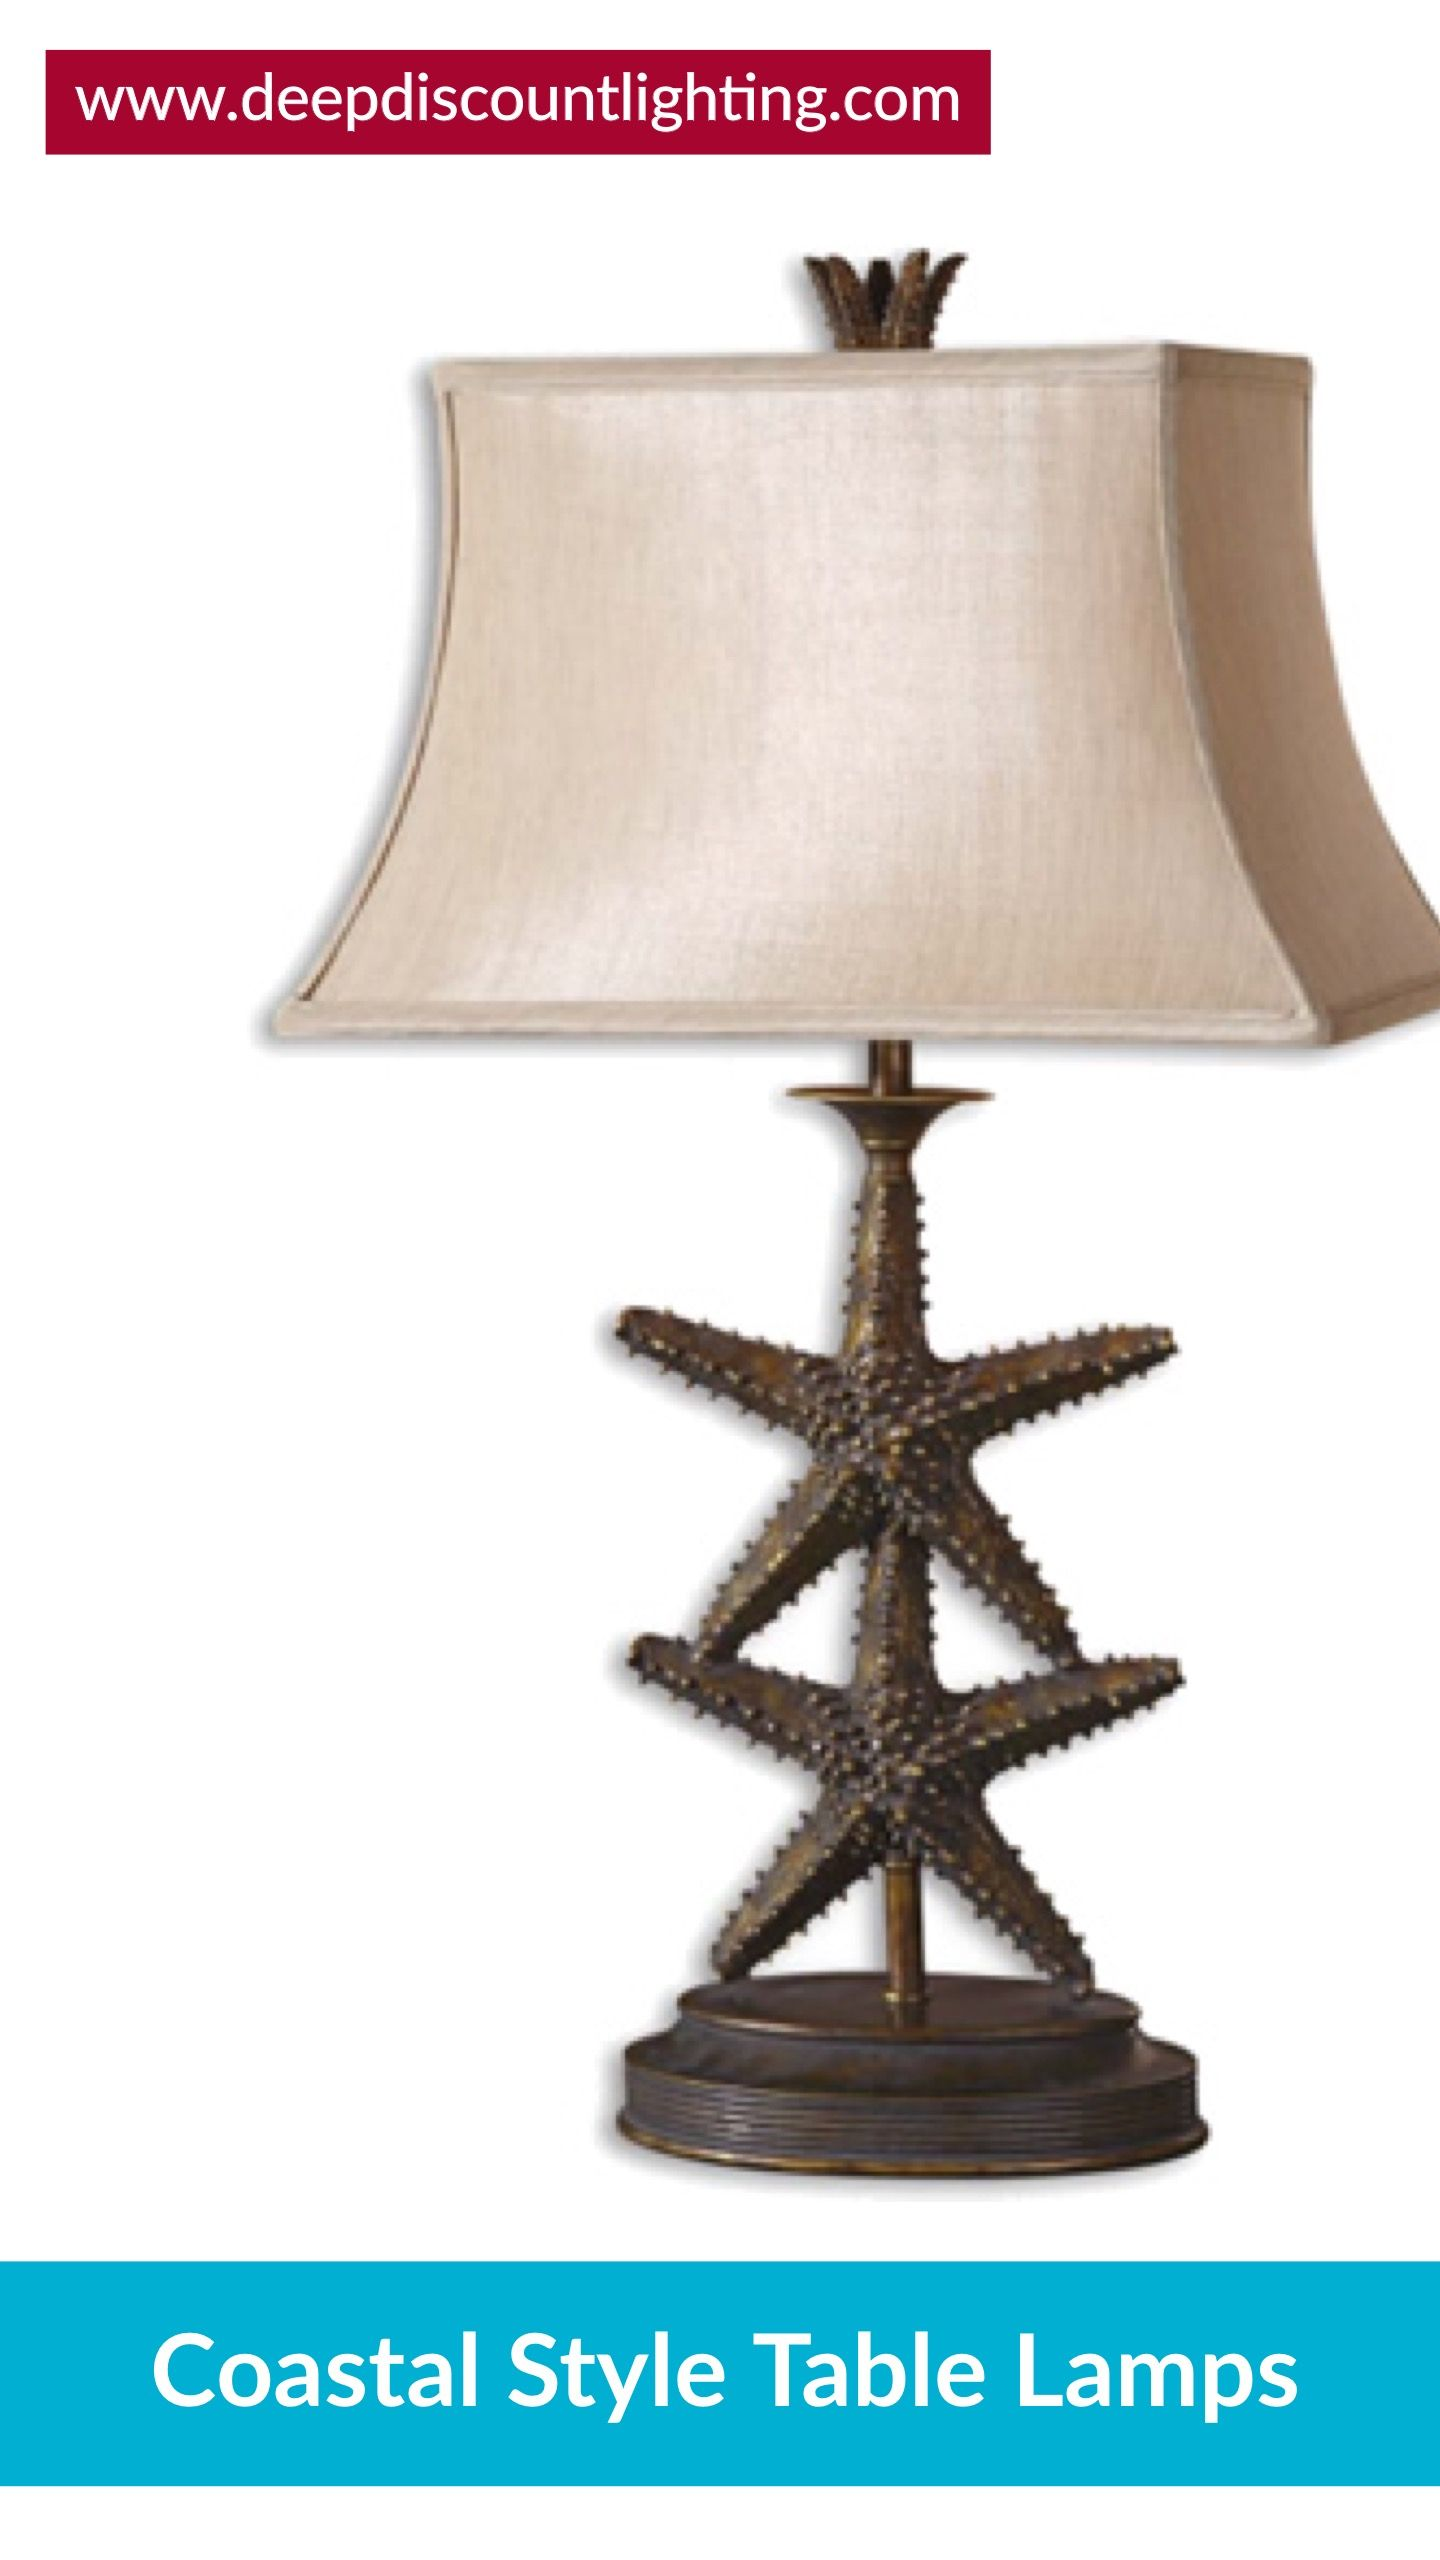 Coastal Style Table & Floor Lamps Coastal Living with